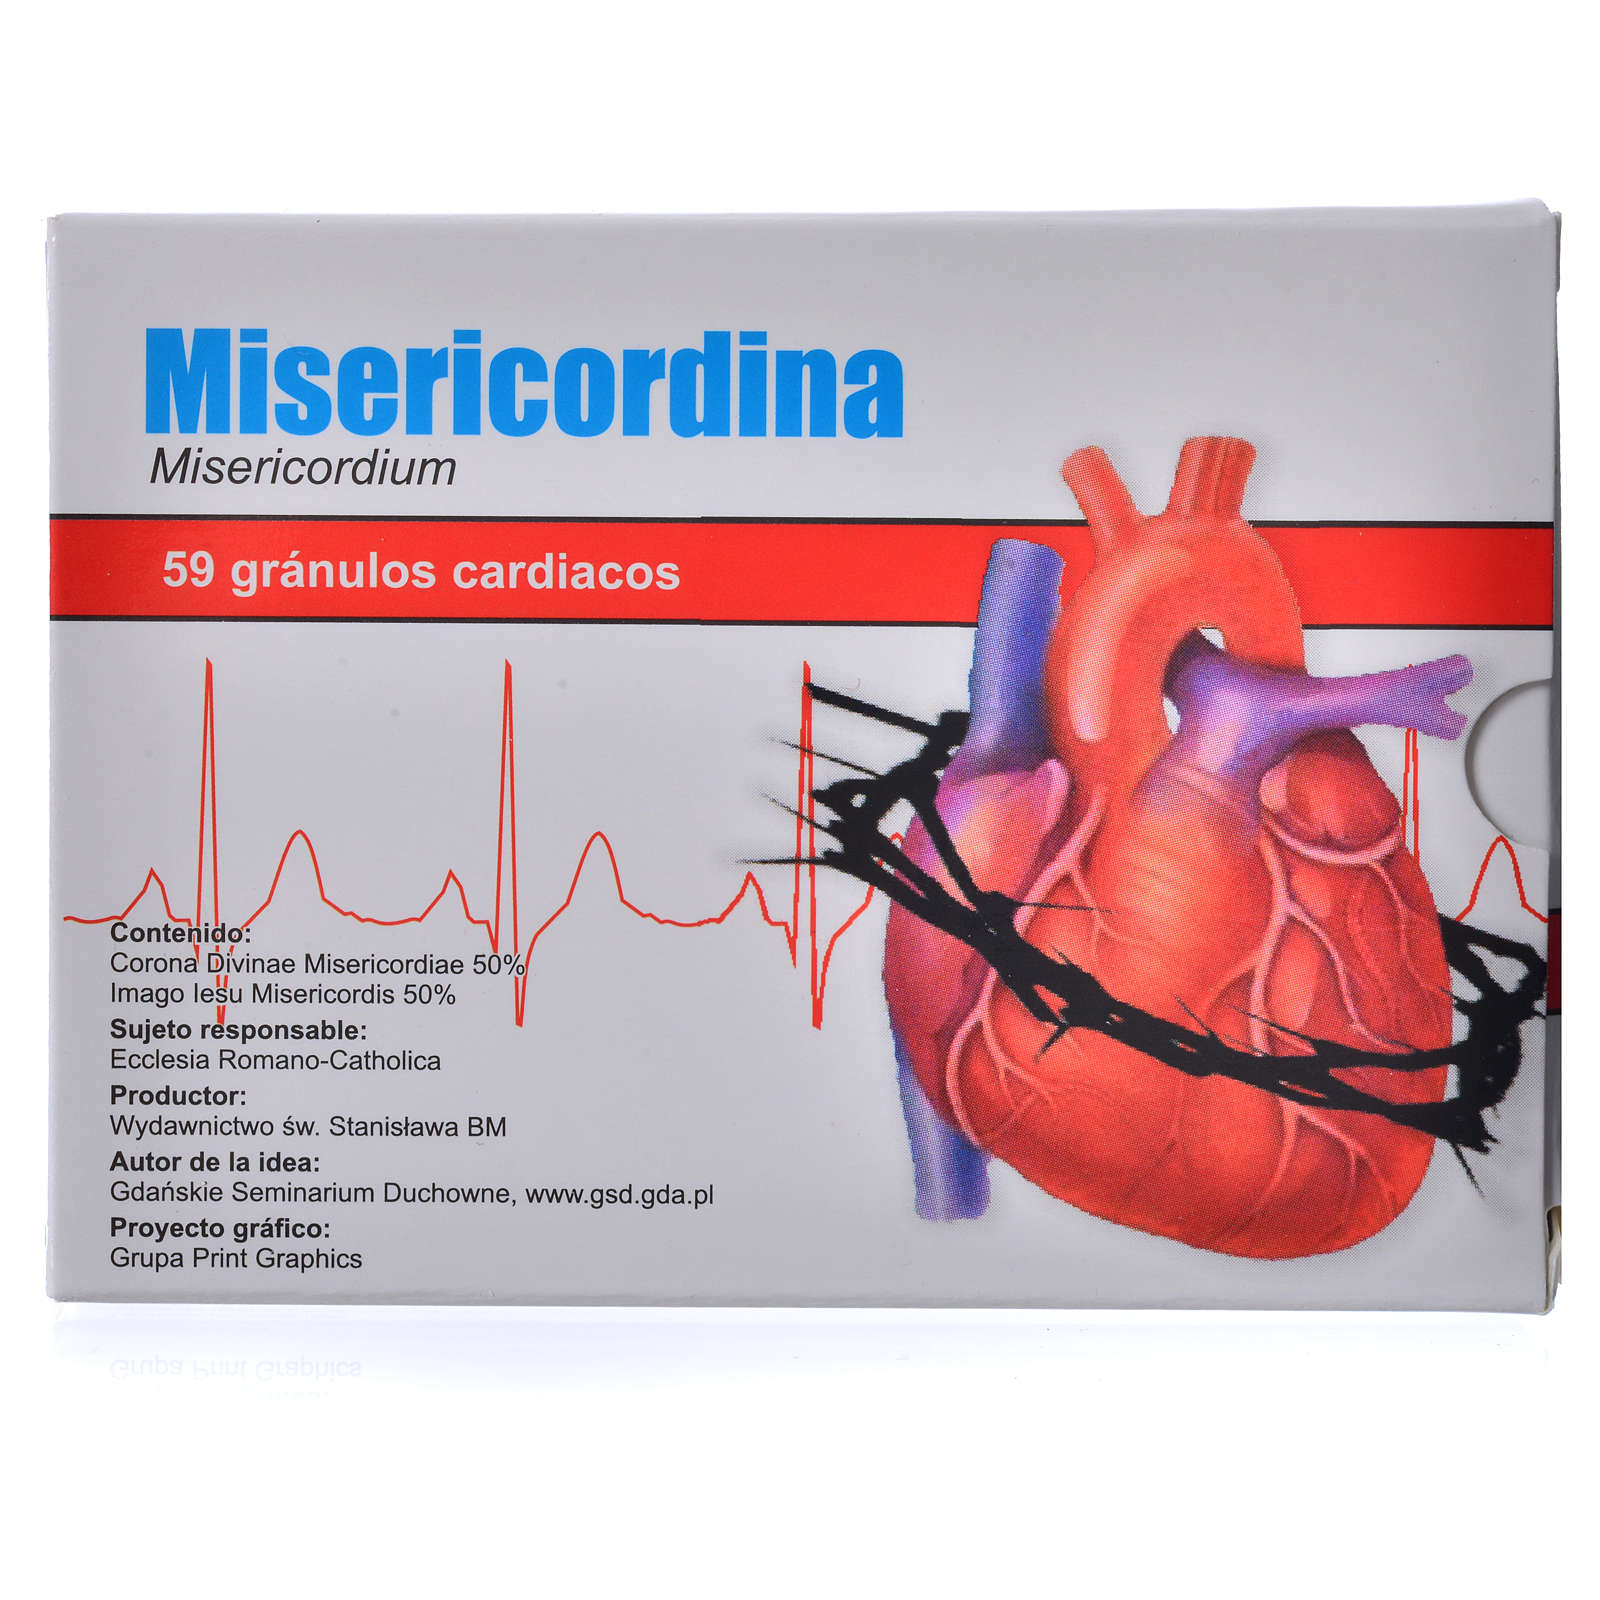 Misericordin by Pope Francis SPANISH 4